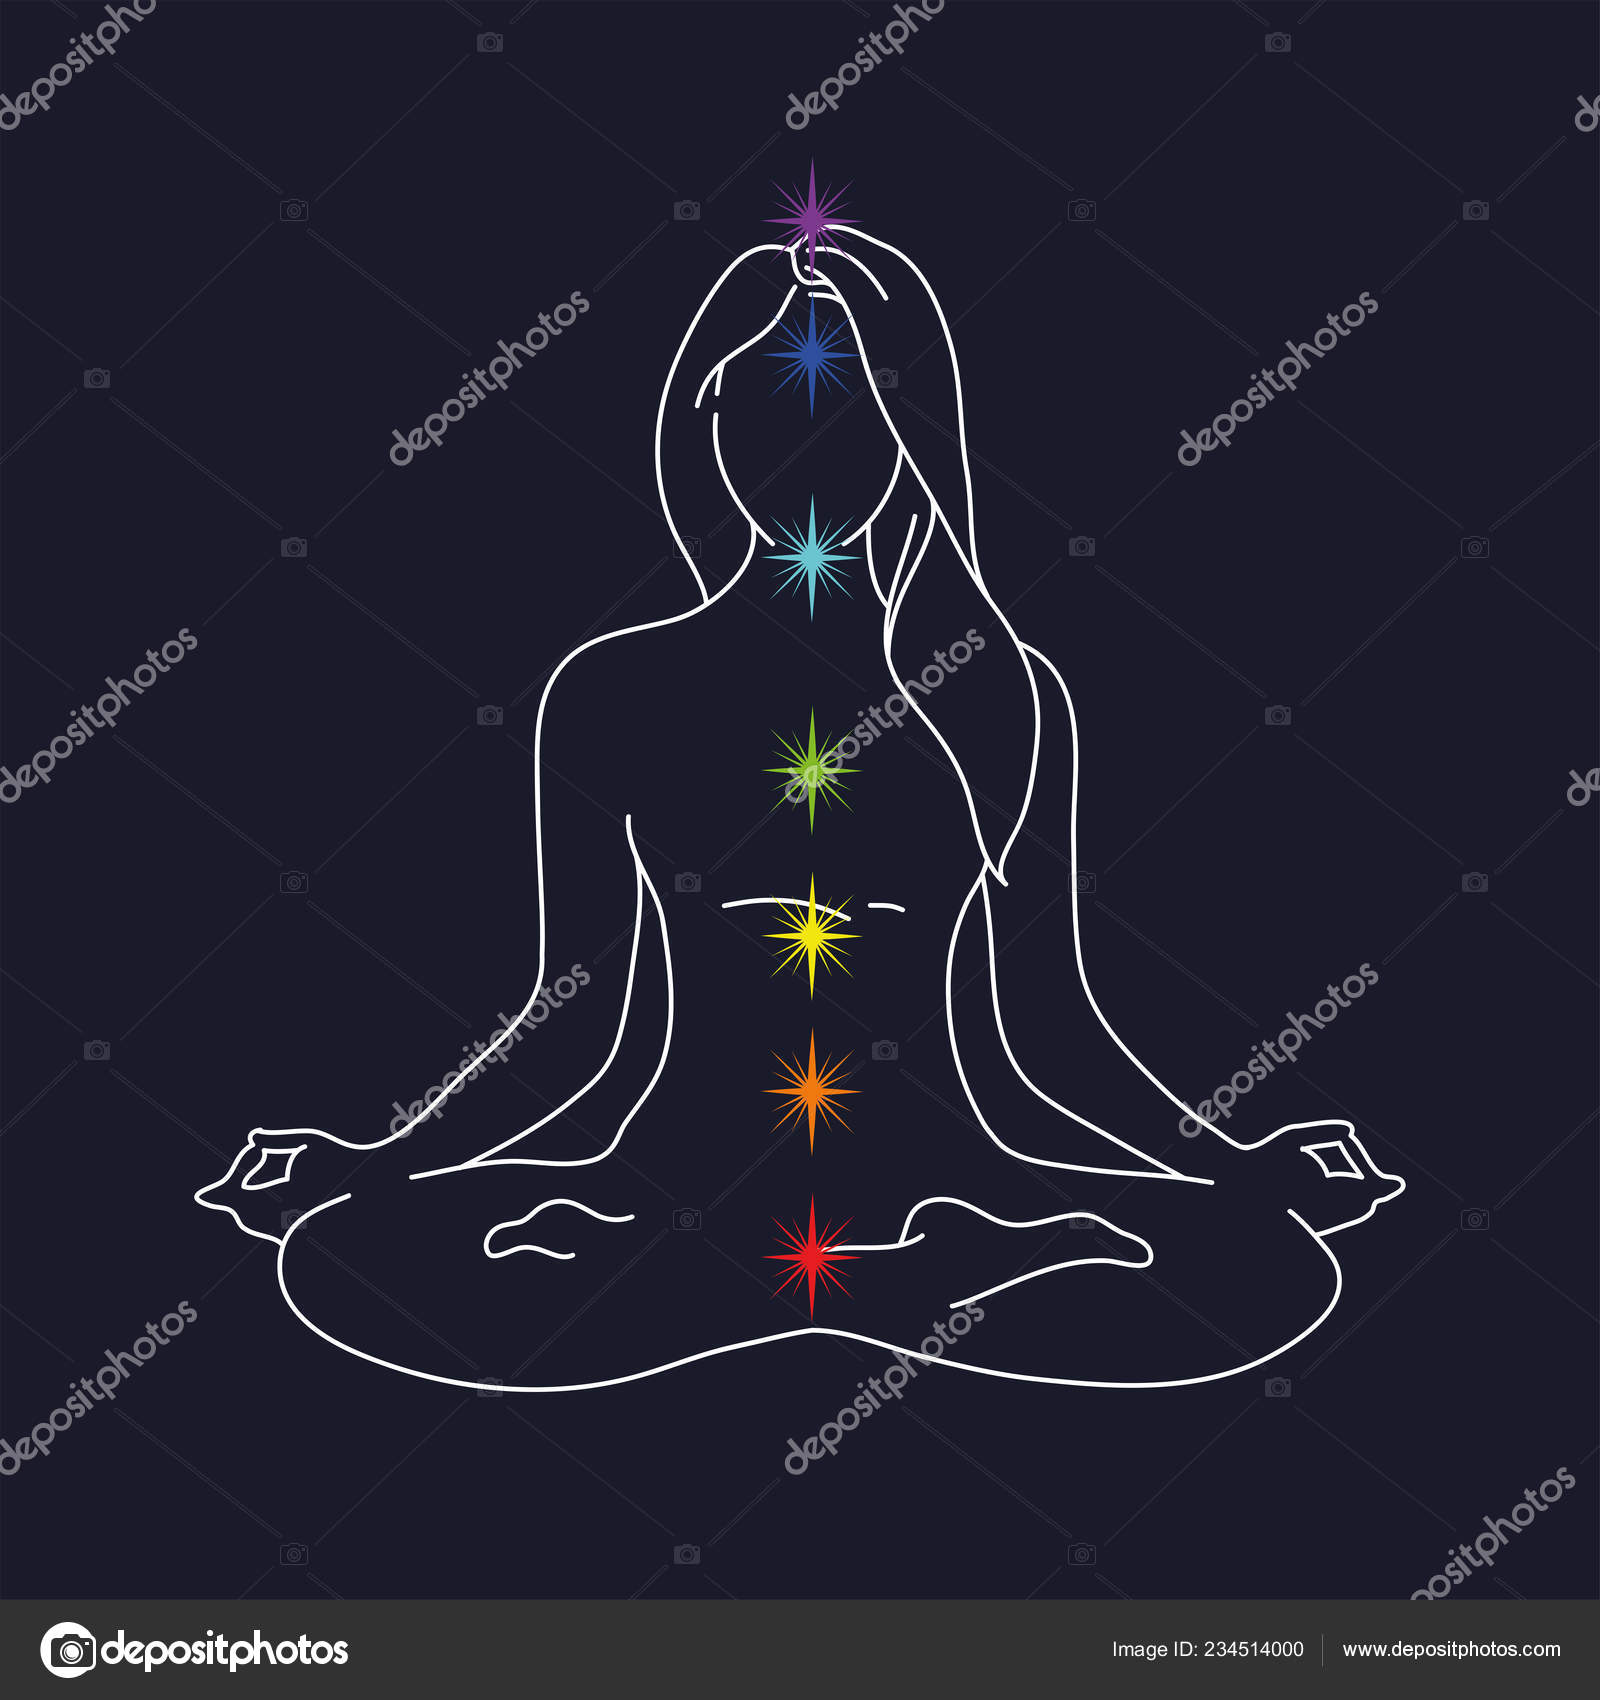 Woman Yoga Pose Lotus Position Silhouette Vector Illustration Blue Background Stock Vector C Margaritash 234514000